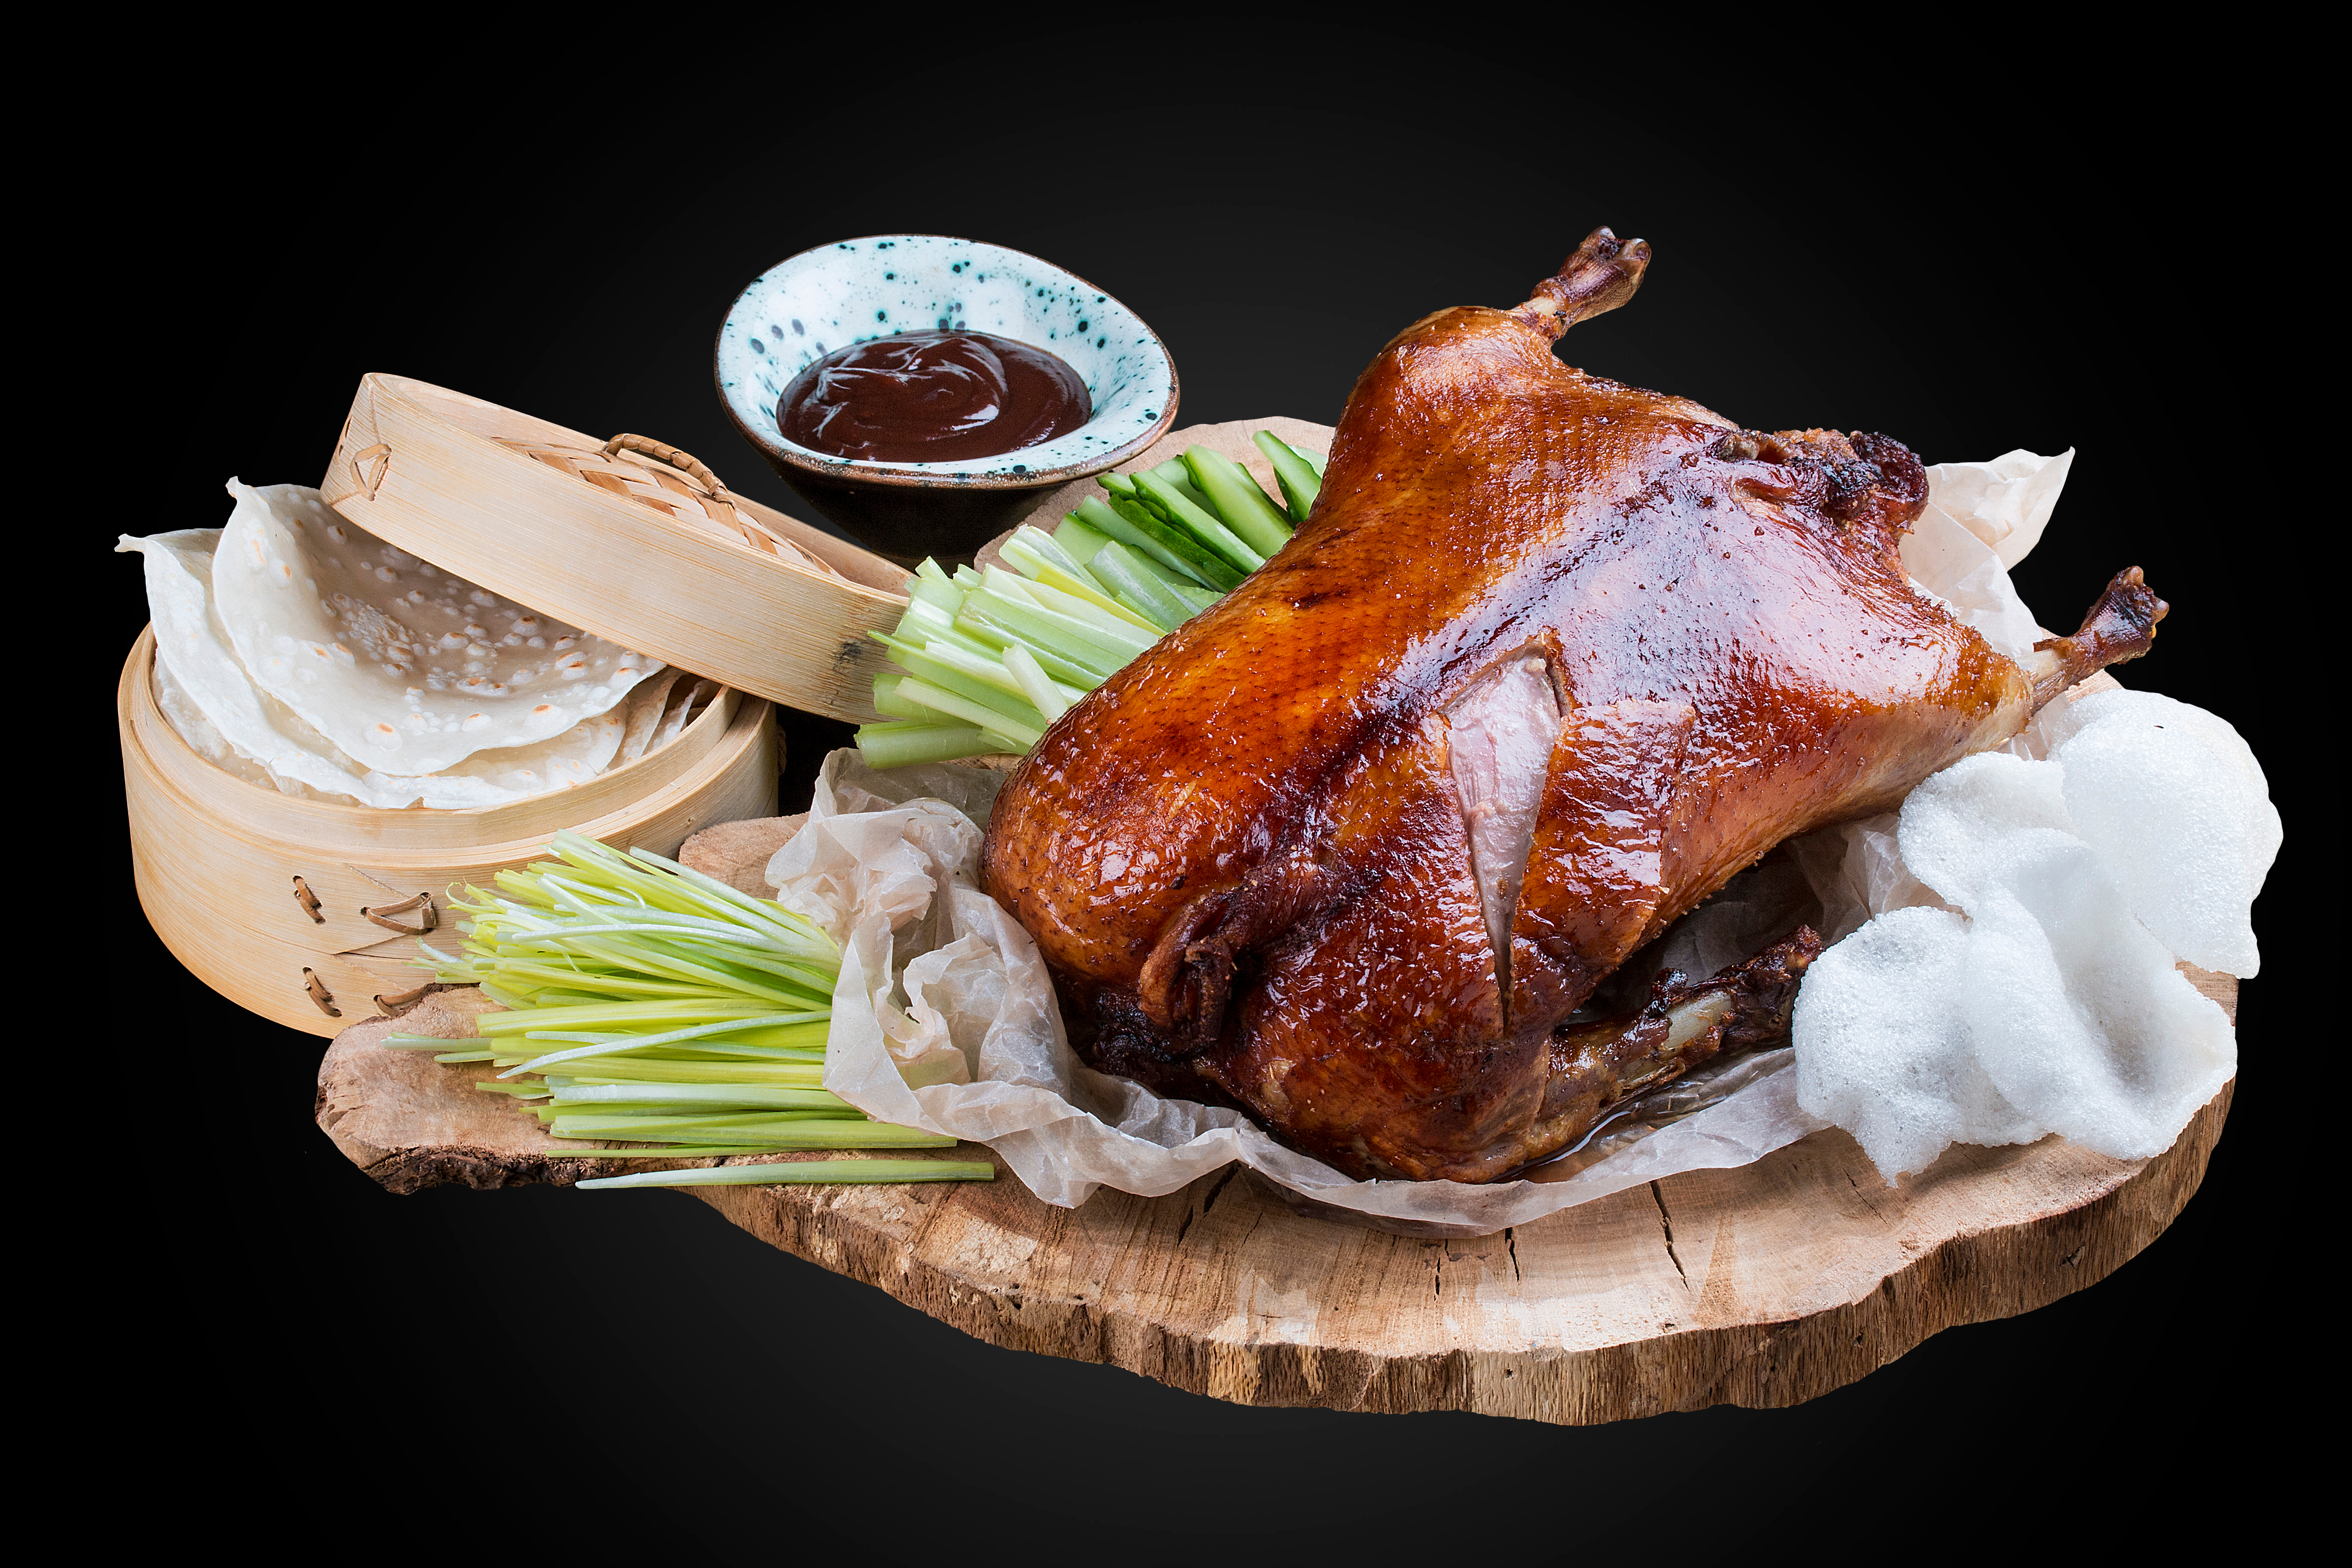 A stock photography of a glossy, dark Peking duck on a wooden platter on a black background, surrounded by accoutrements like Hoisin sauce and a wooden steamer basket of pancakes.